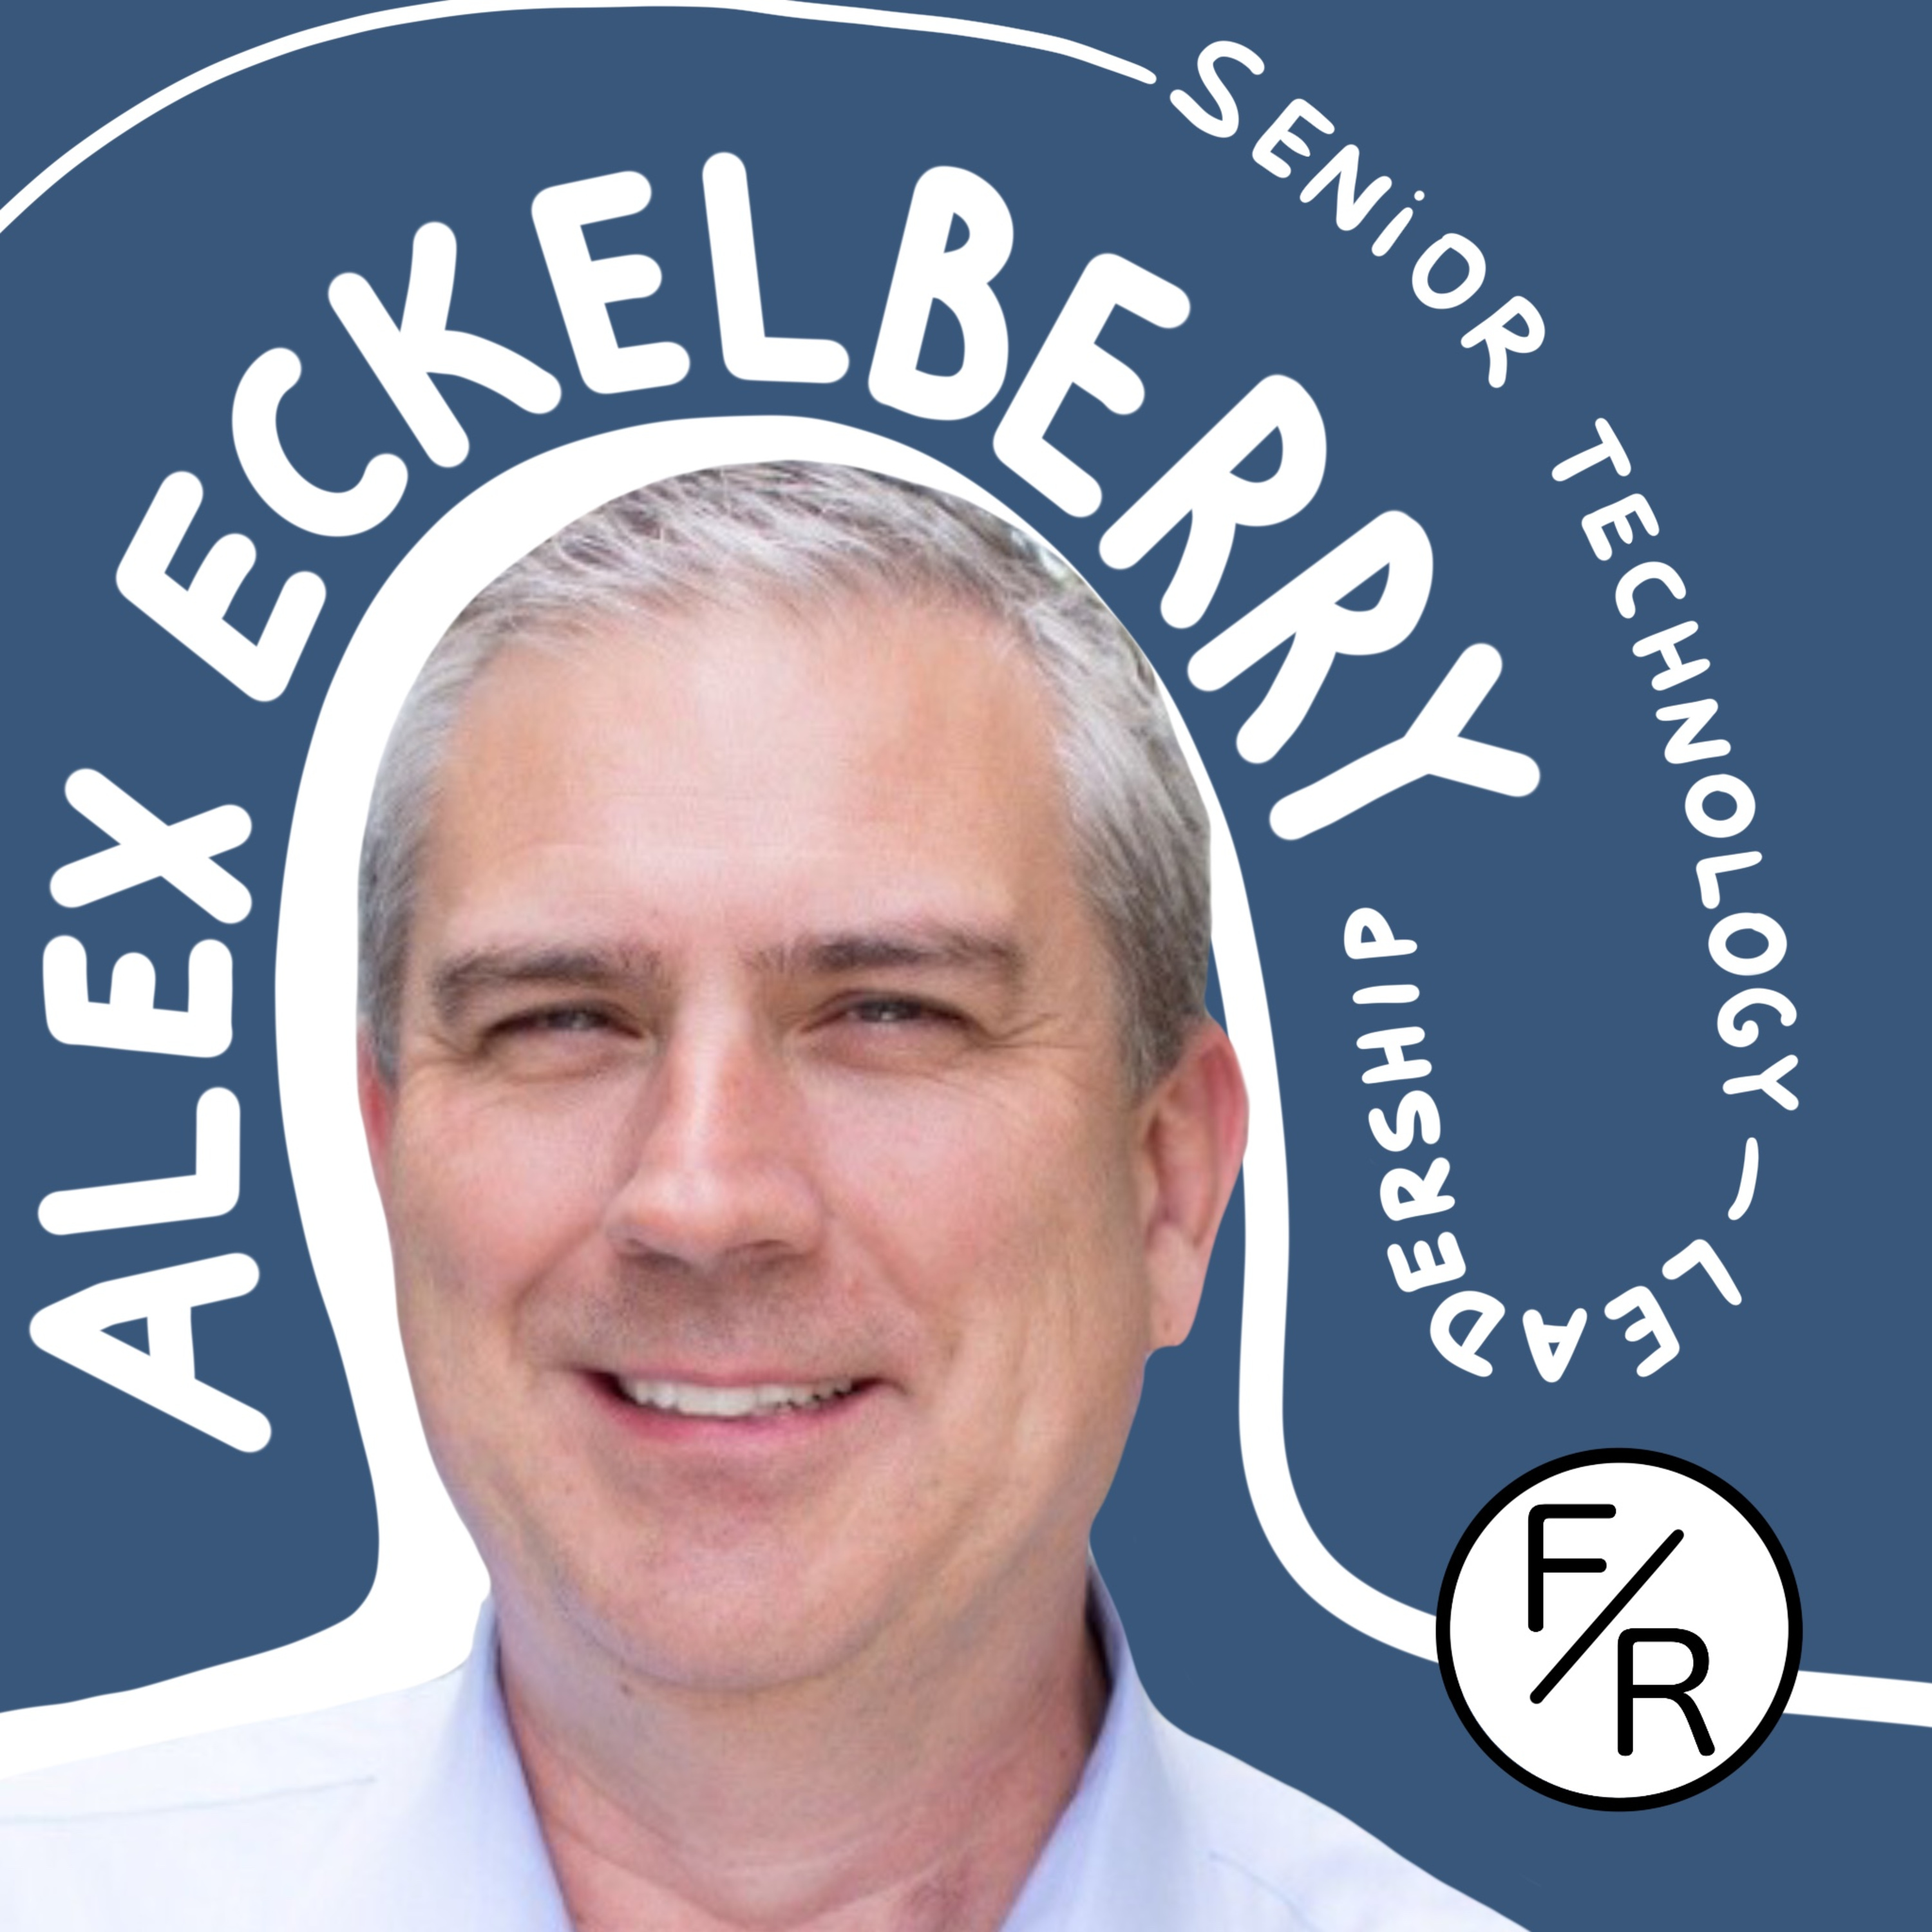 Senior technology leadership and how are startups built. By Alex Eckelberry.